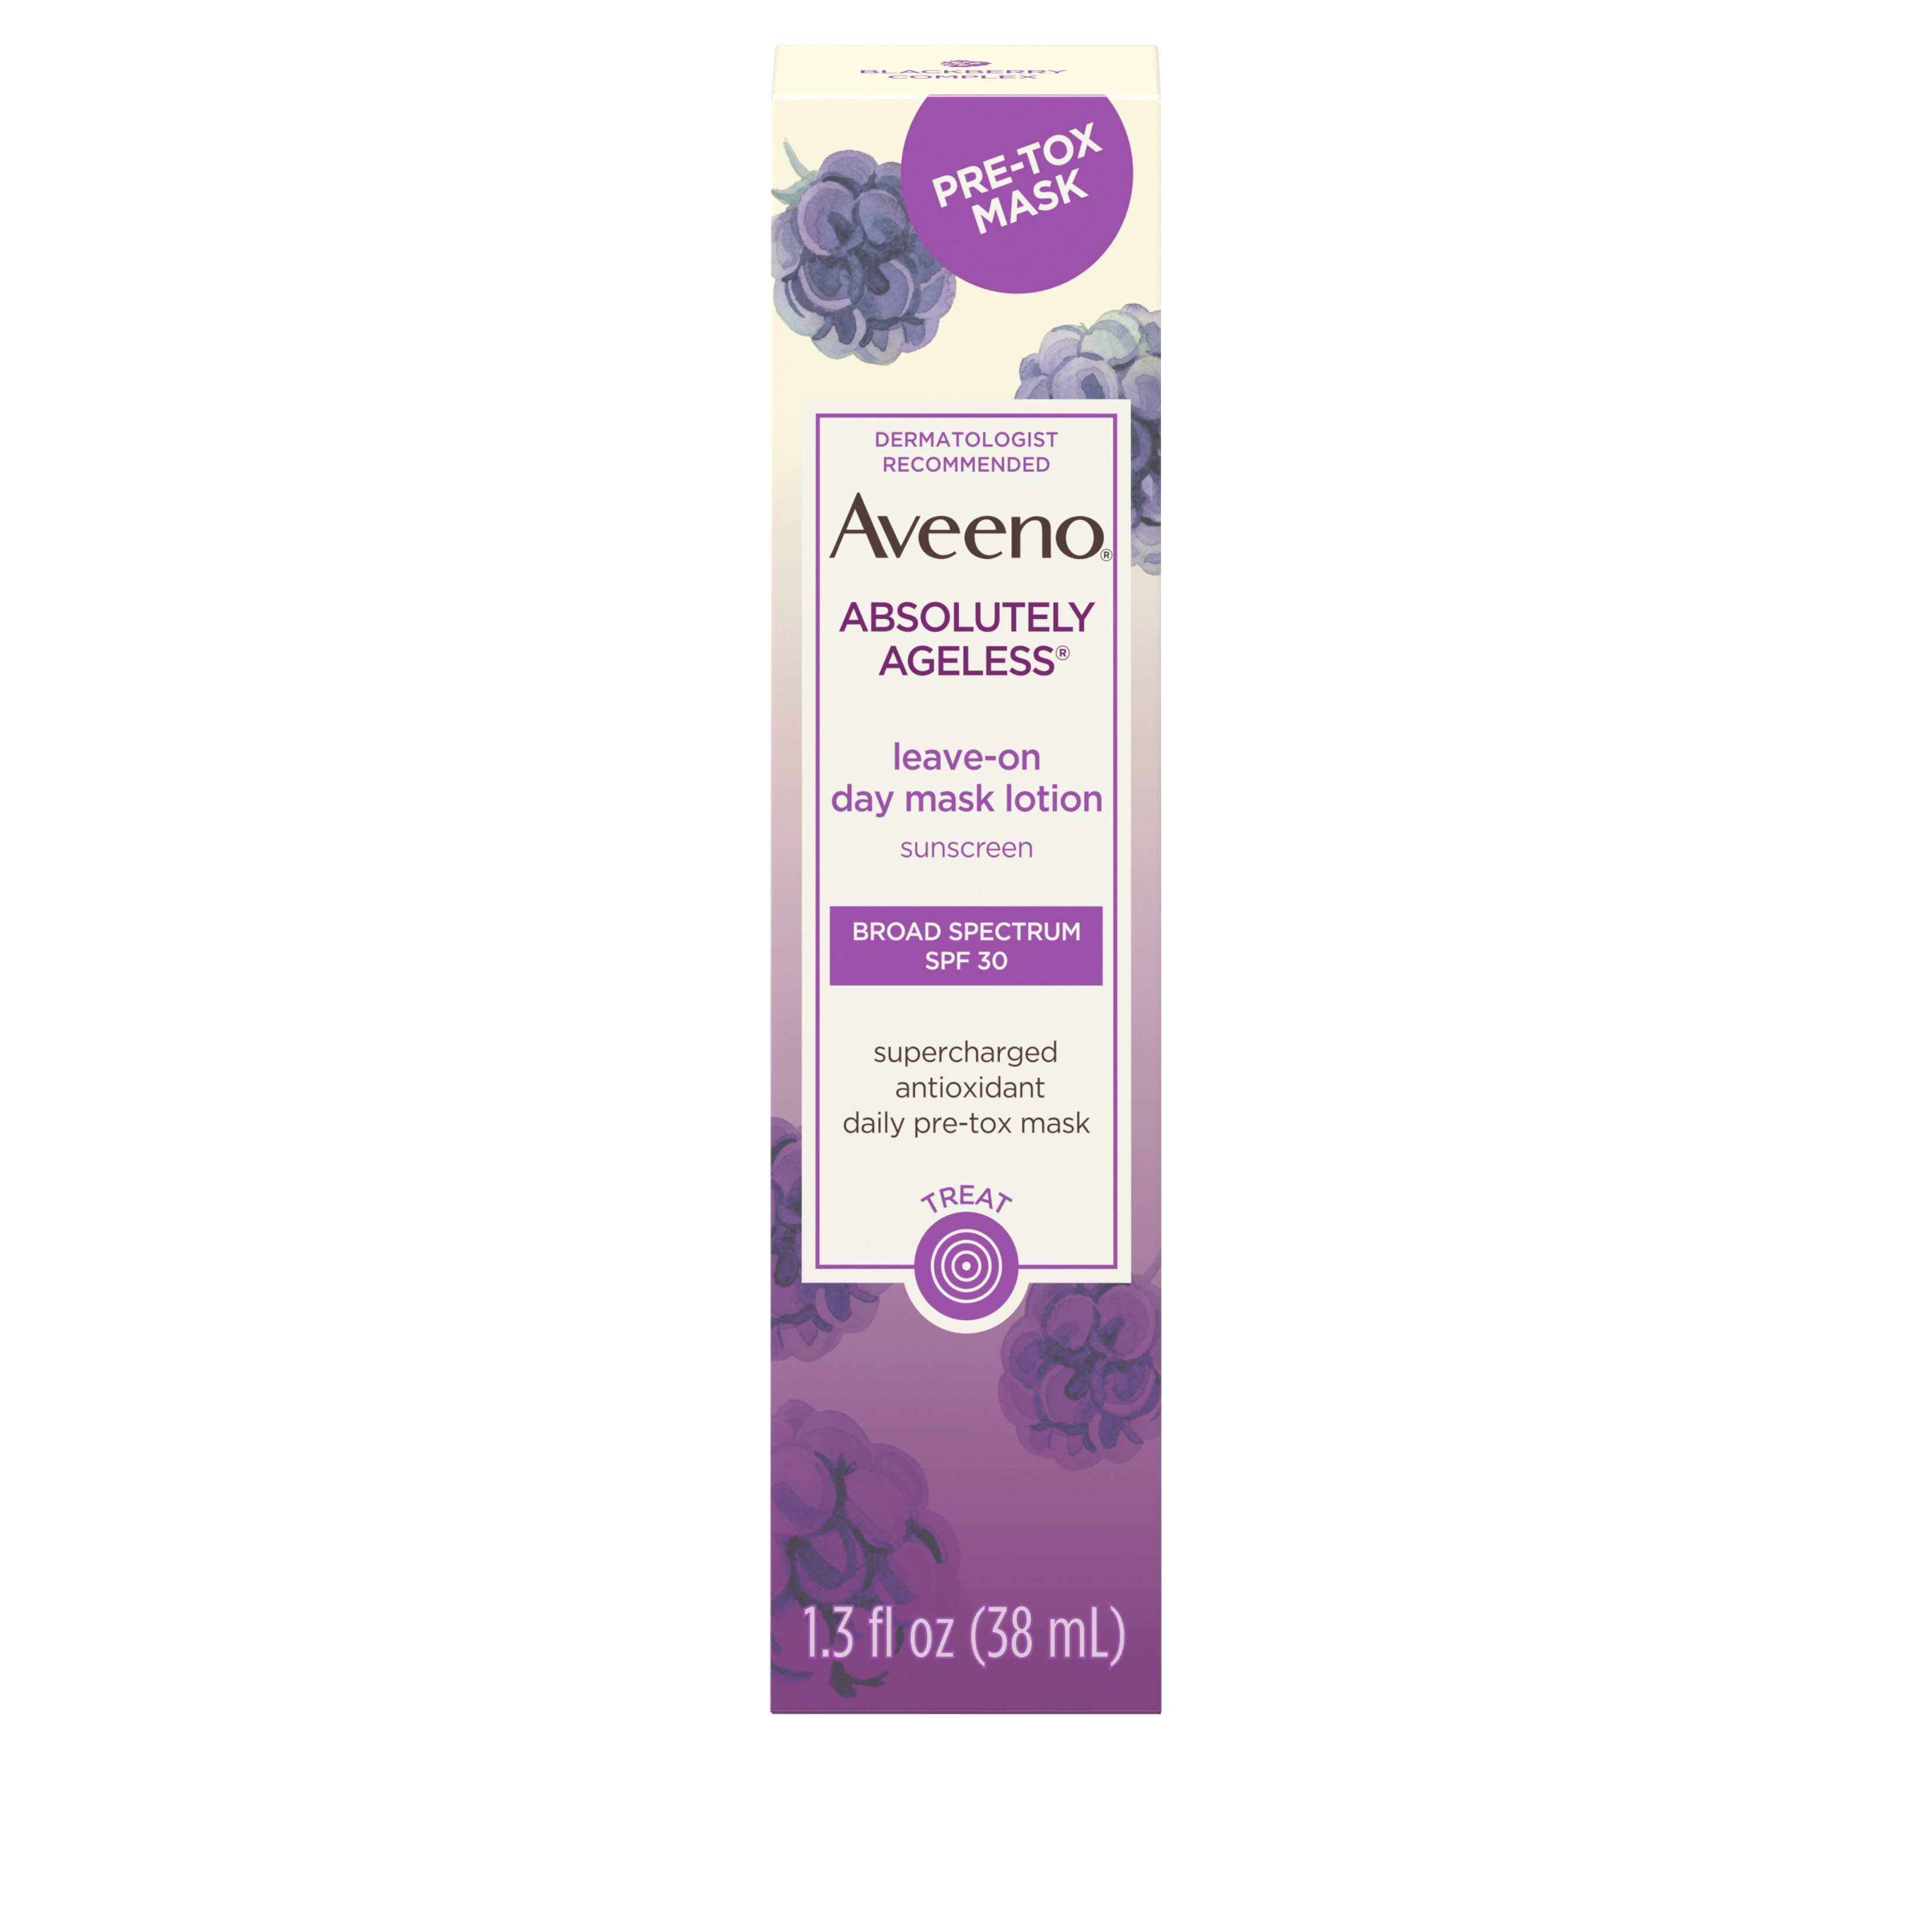 Aveeno Absolutely Ageless Leave-on Face Lotion with SPF 30, 1.3 fl. oz